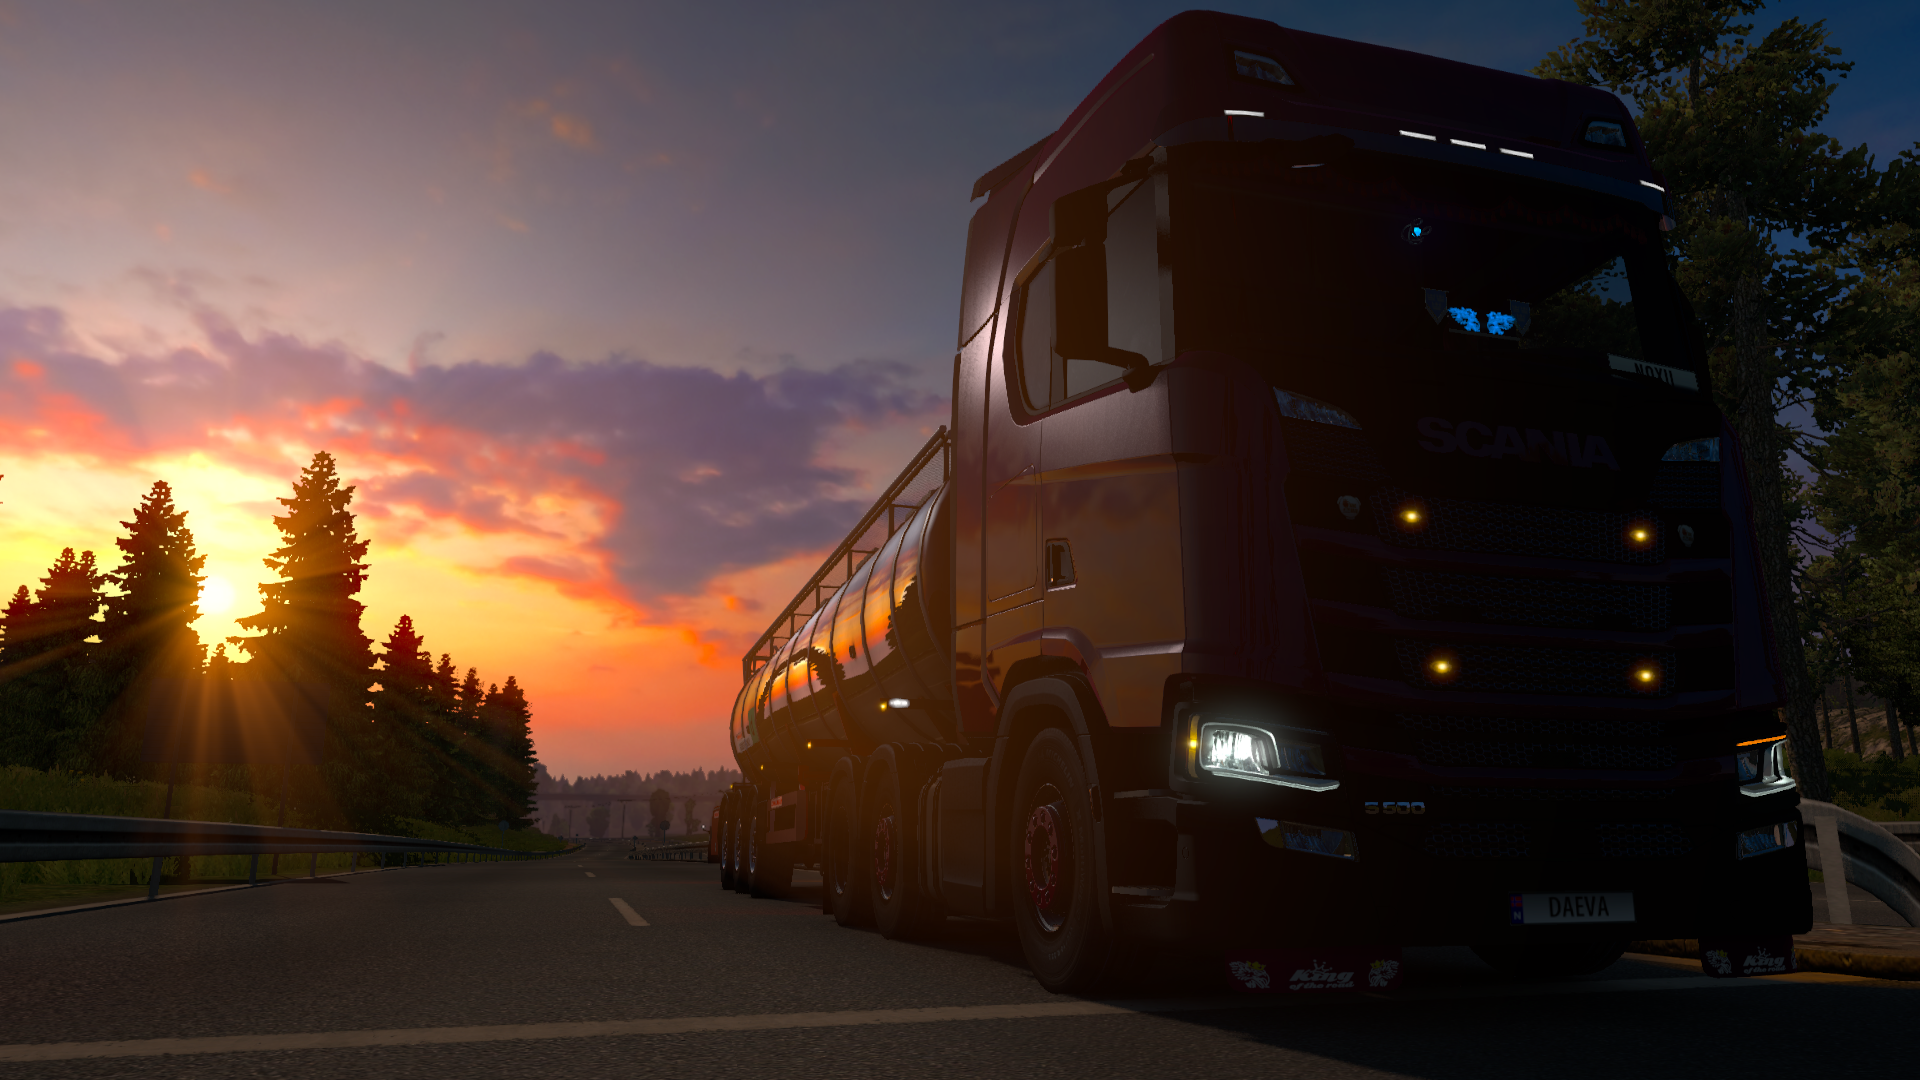 ets2_20190317_153203_00.png